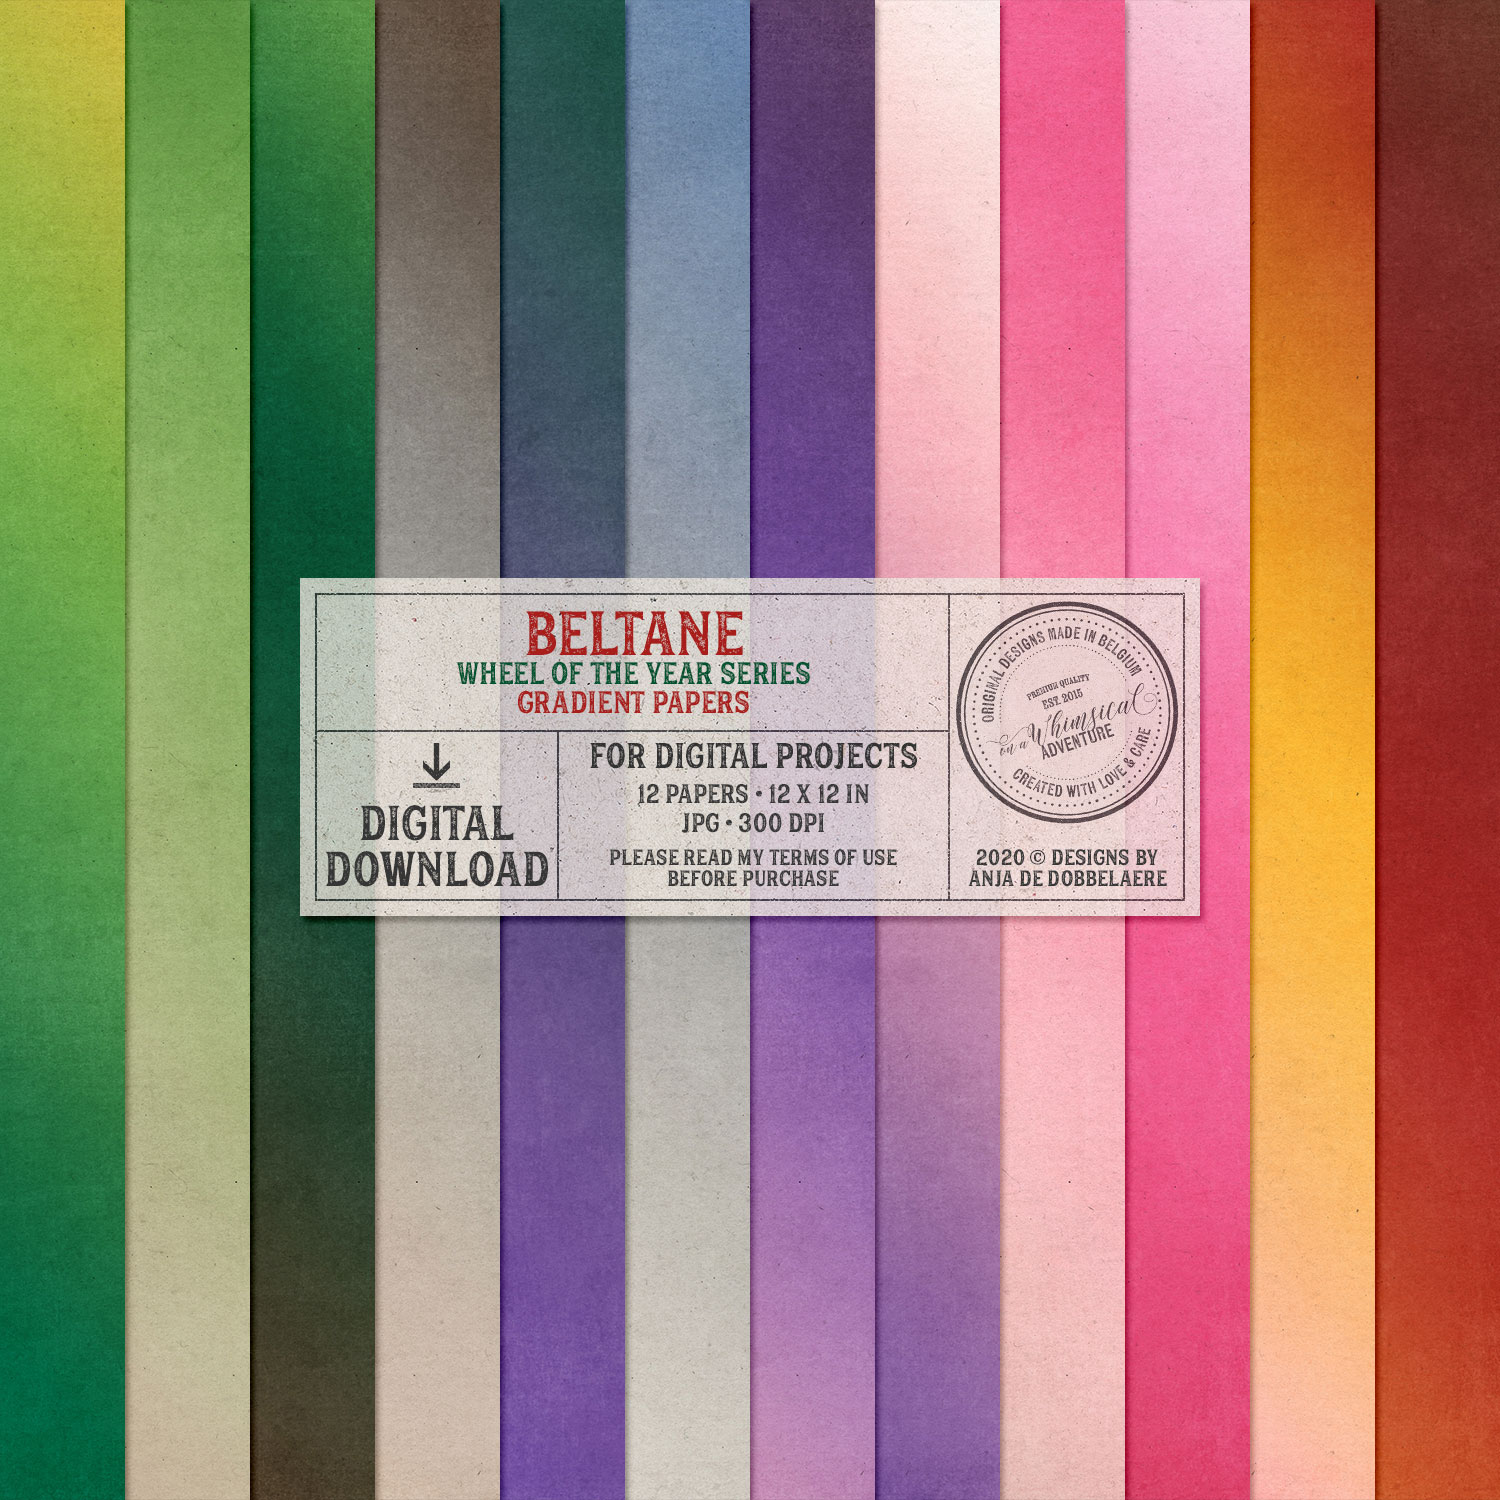 Wheel Of The Year Beltane Gradient Papers by On A Whimsical Adventure